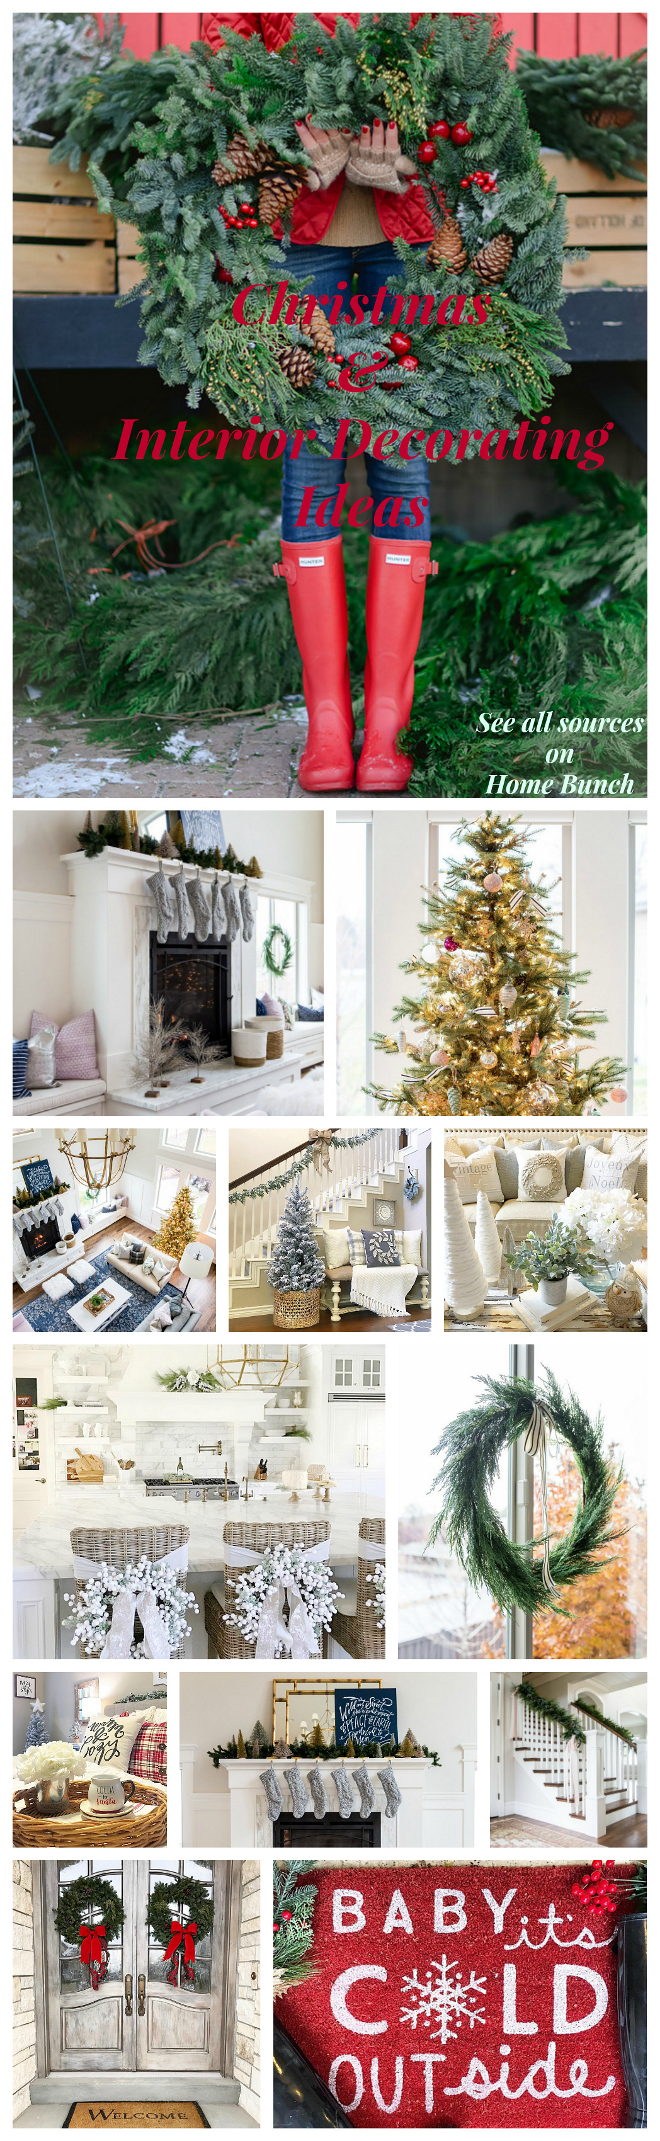 Christmas & Interior Decorating Ideas. Christmas & Interior Decorating Ideas #ChristmasInteriorDecoratingIdeas